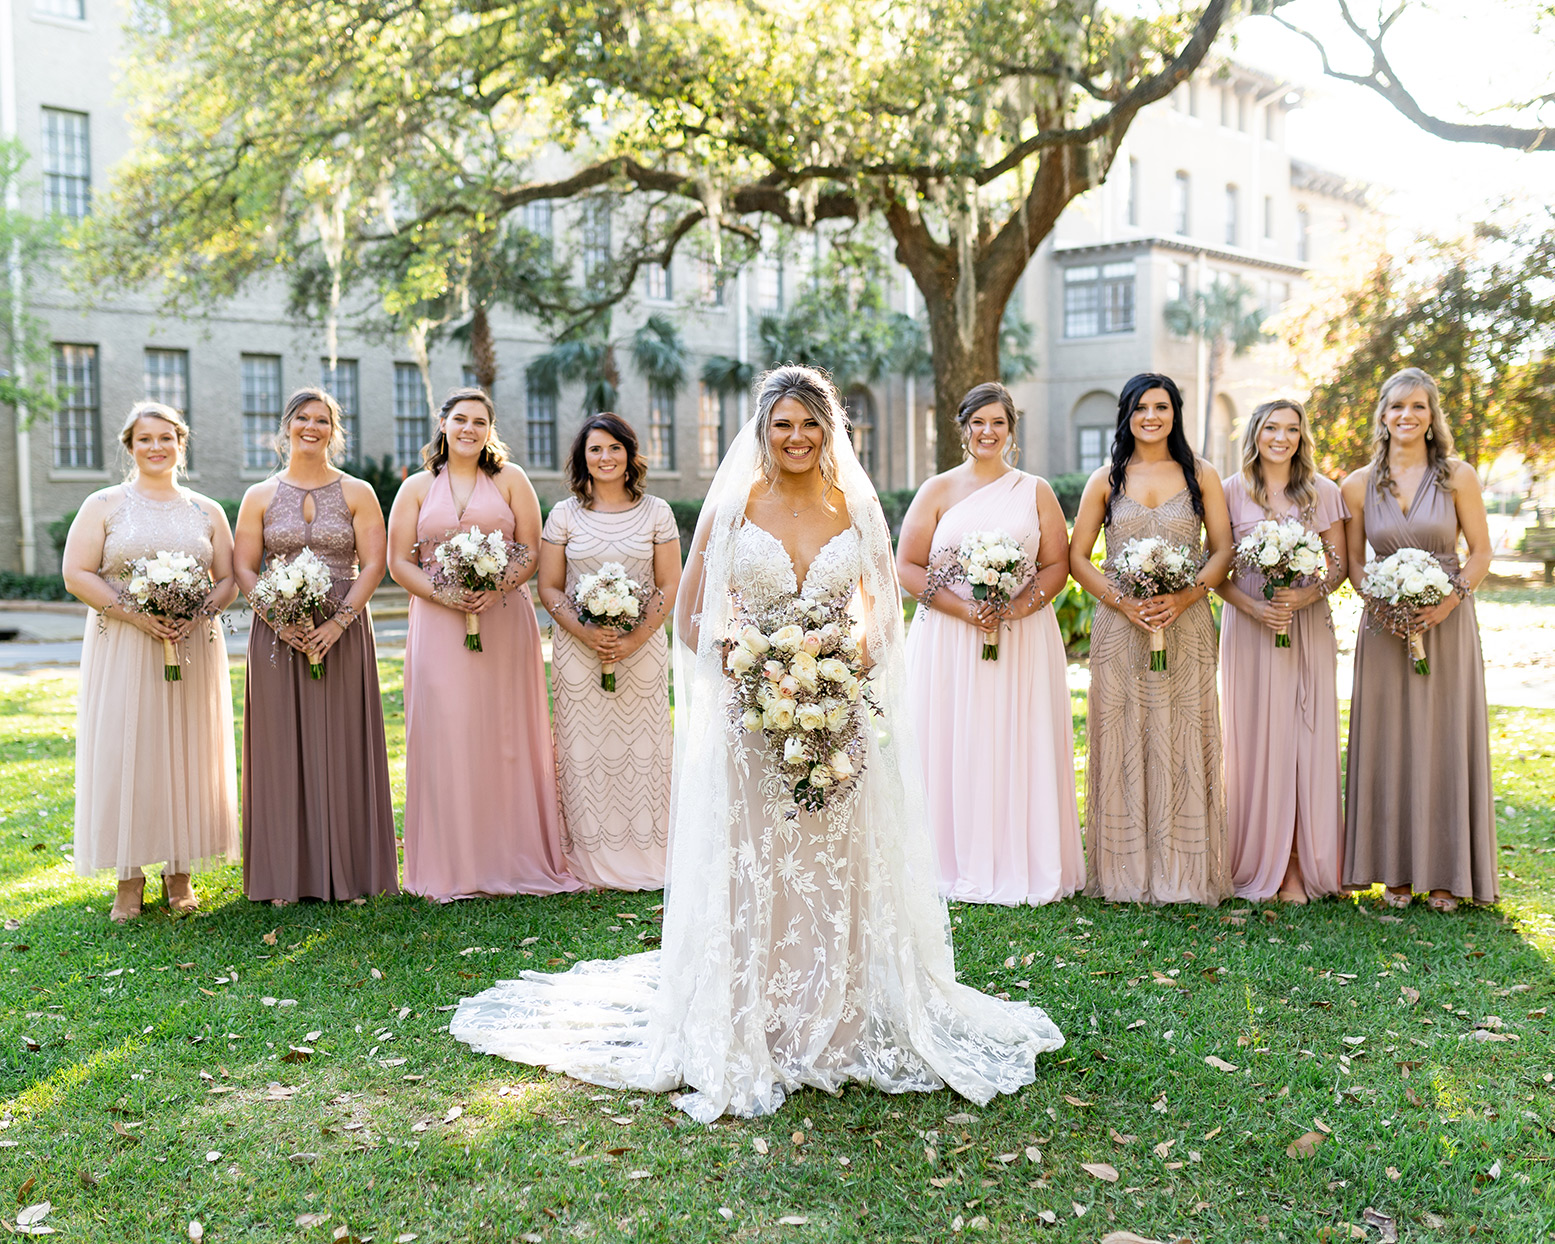 bride and bridesmaids in shades of pink